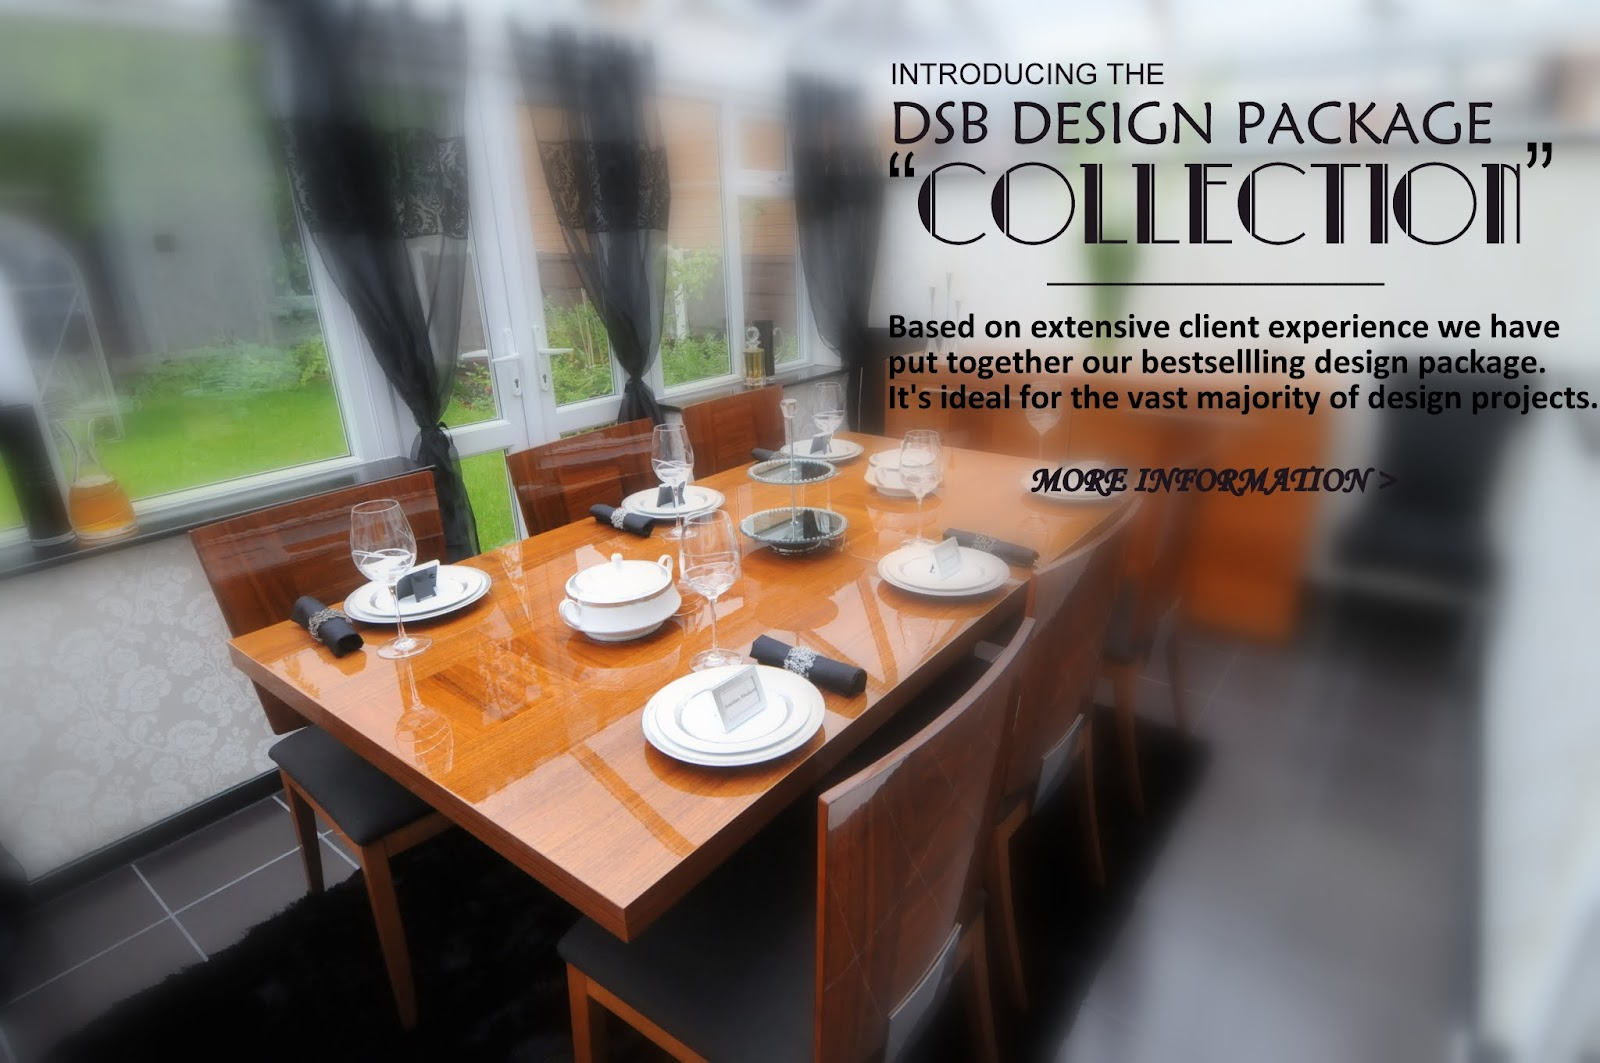 DSB's Bestselling Design Package